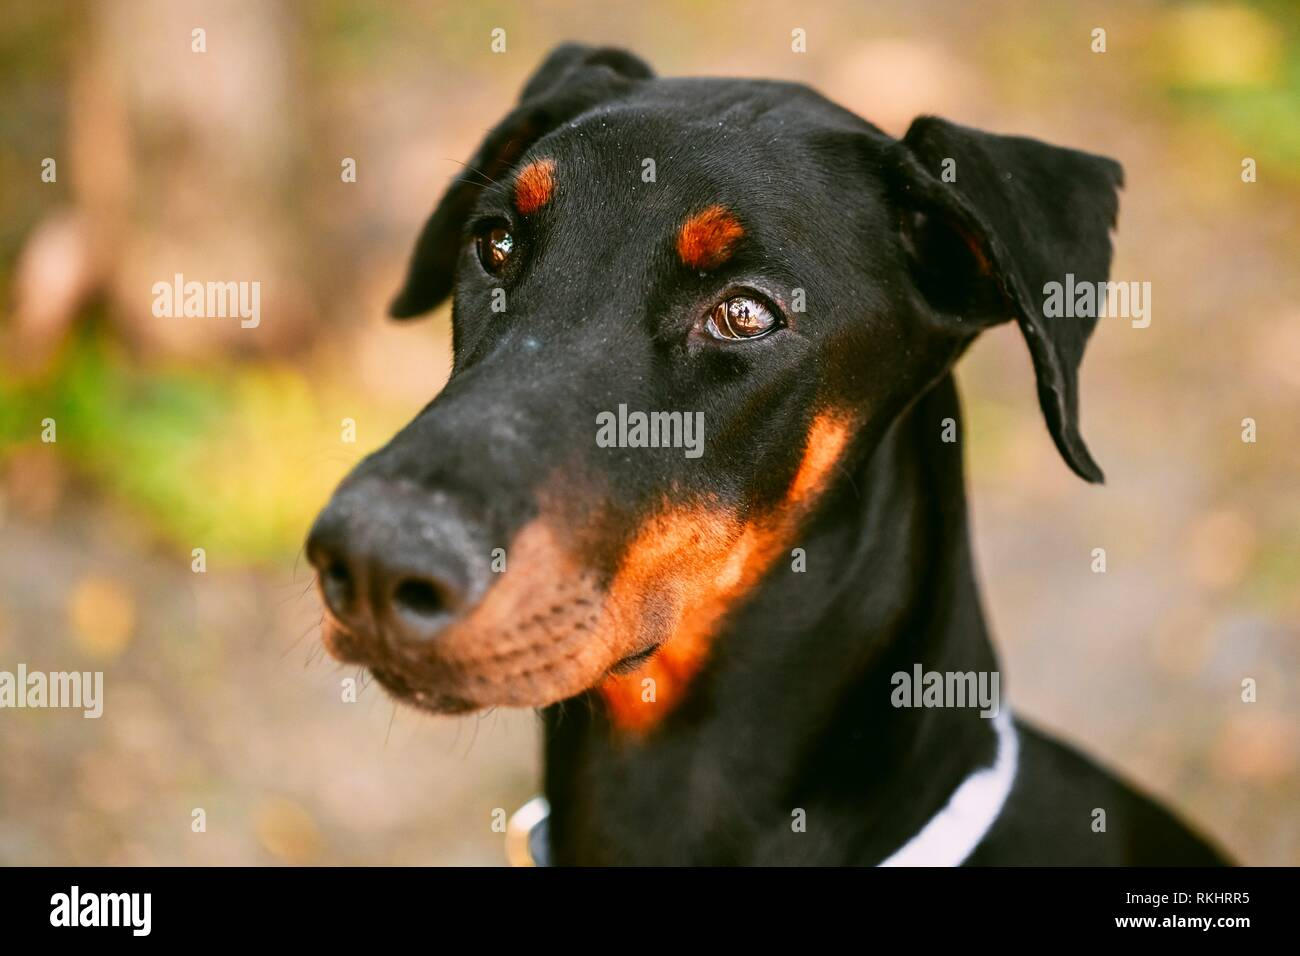 Young, Beautiful, Black And Tan Doberman. Dobermann Is Breed Known For Being Intelligent, Alert, And Loyal Companion Dogs. - Stock Image